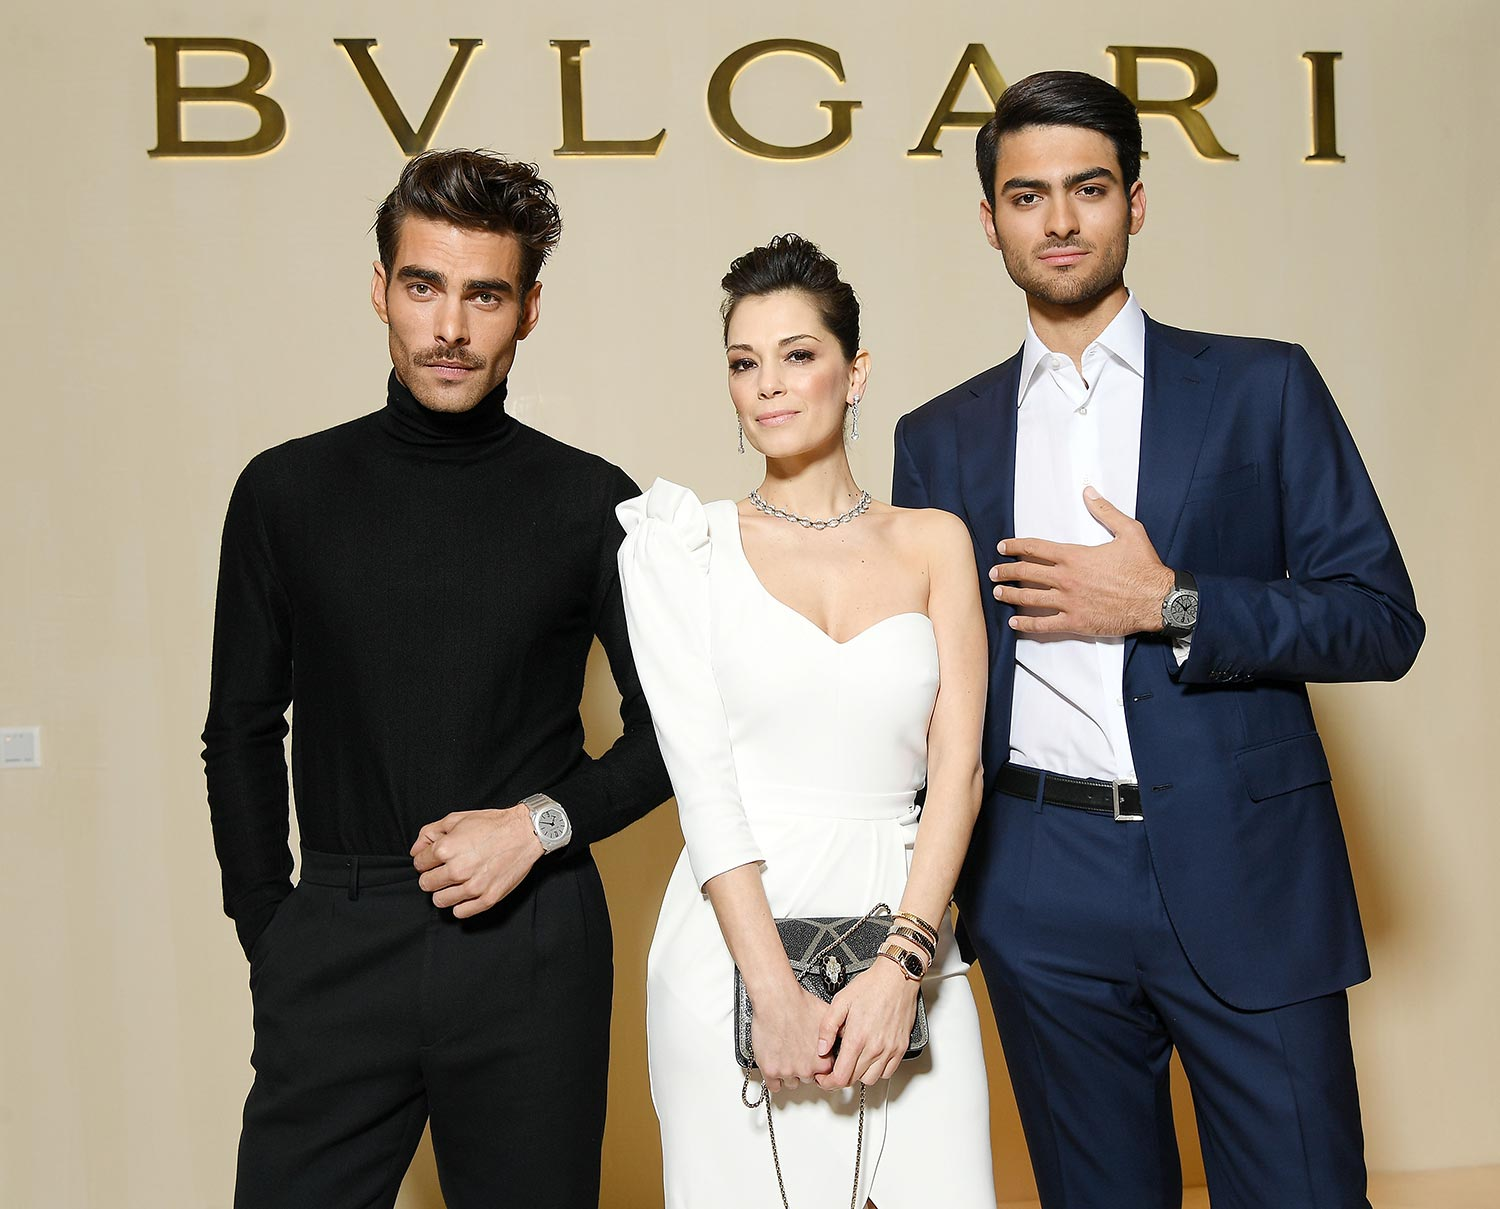 Bulgari Basel Press Party - Jon Kortajarena, Giorgia Surina, Matteo Bocelli - Hair & makeup Massimo Serini